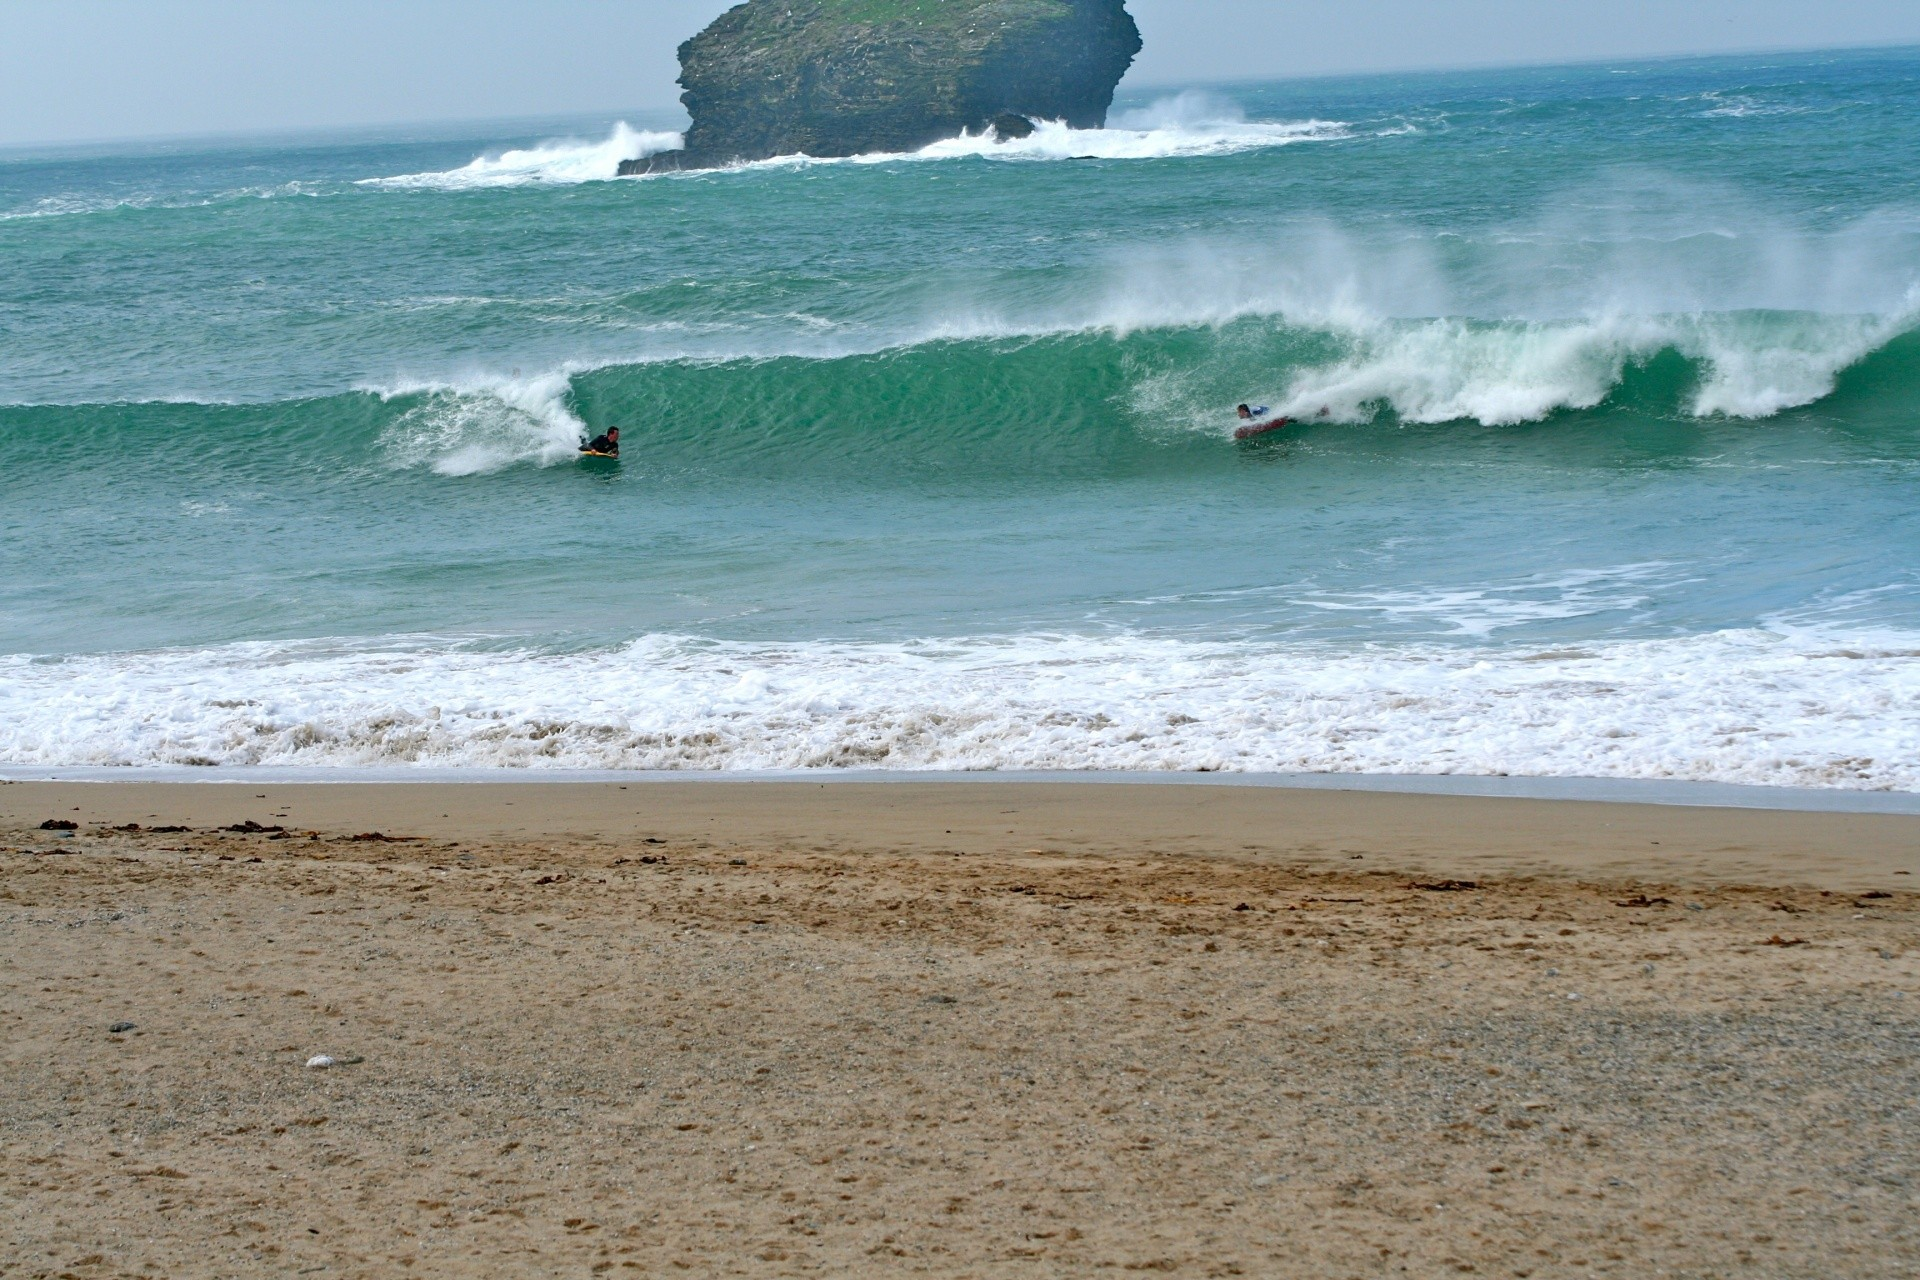 The mud ant's photo of Portreath - Beach